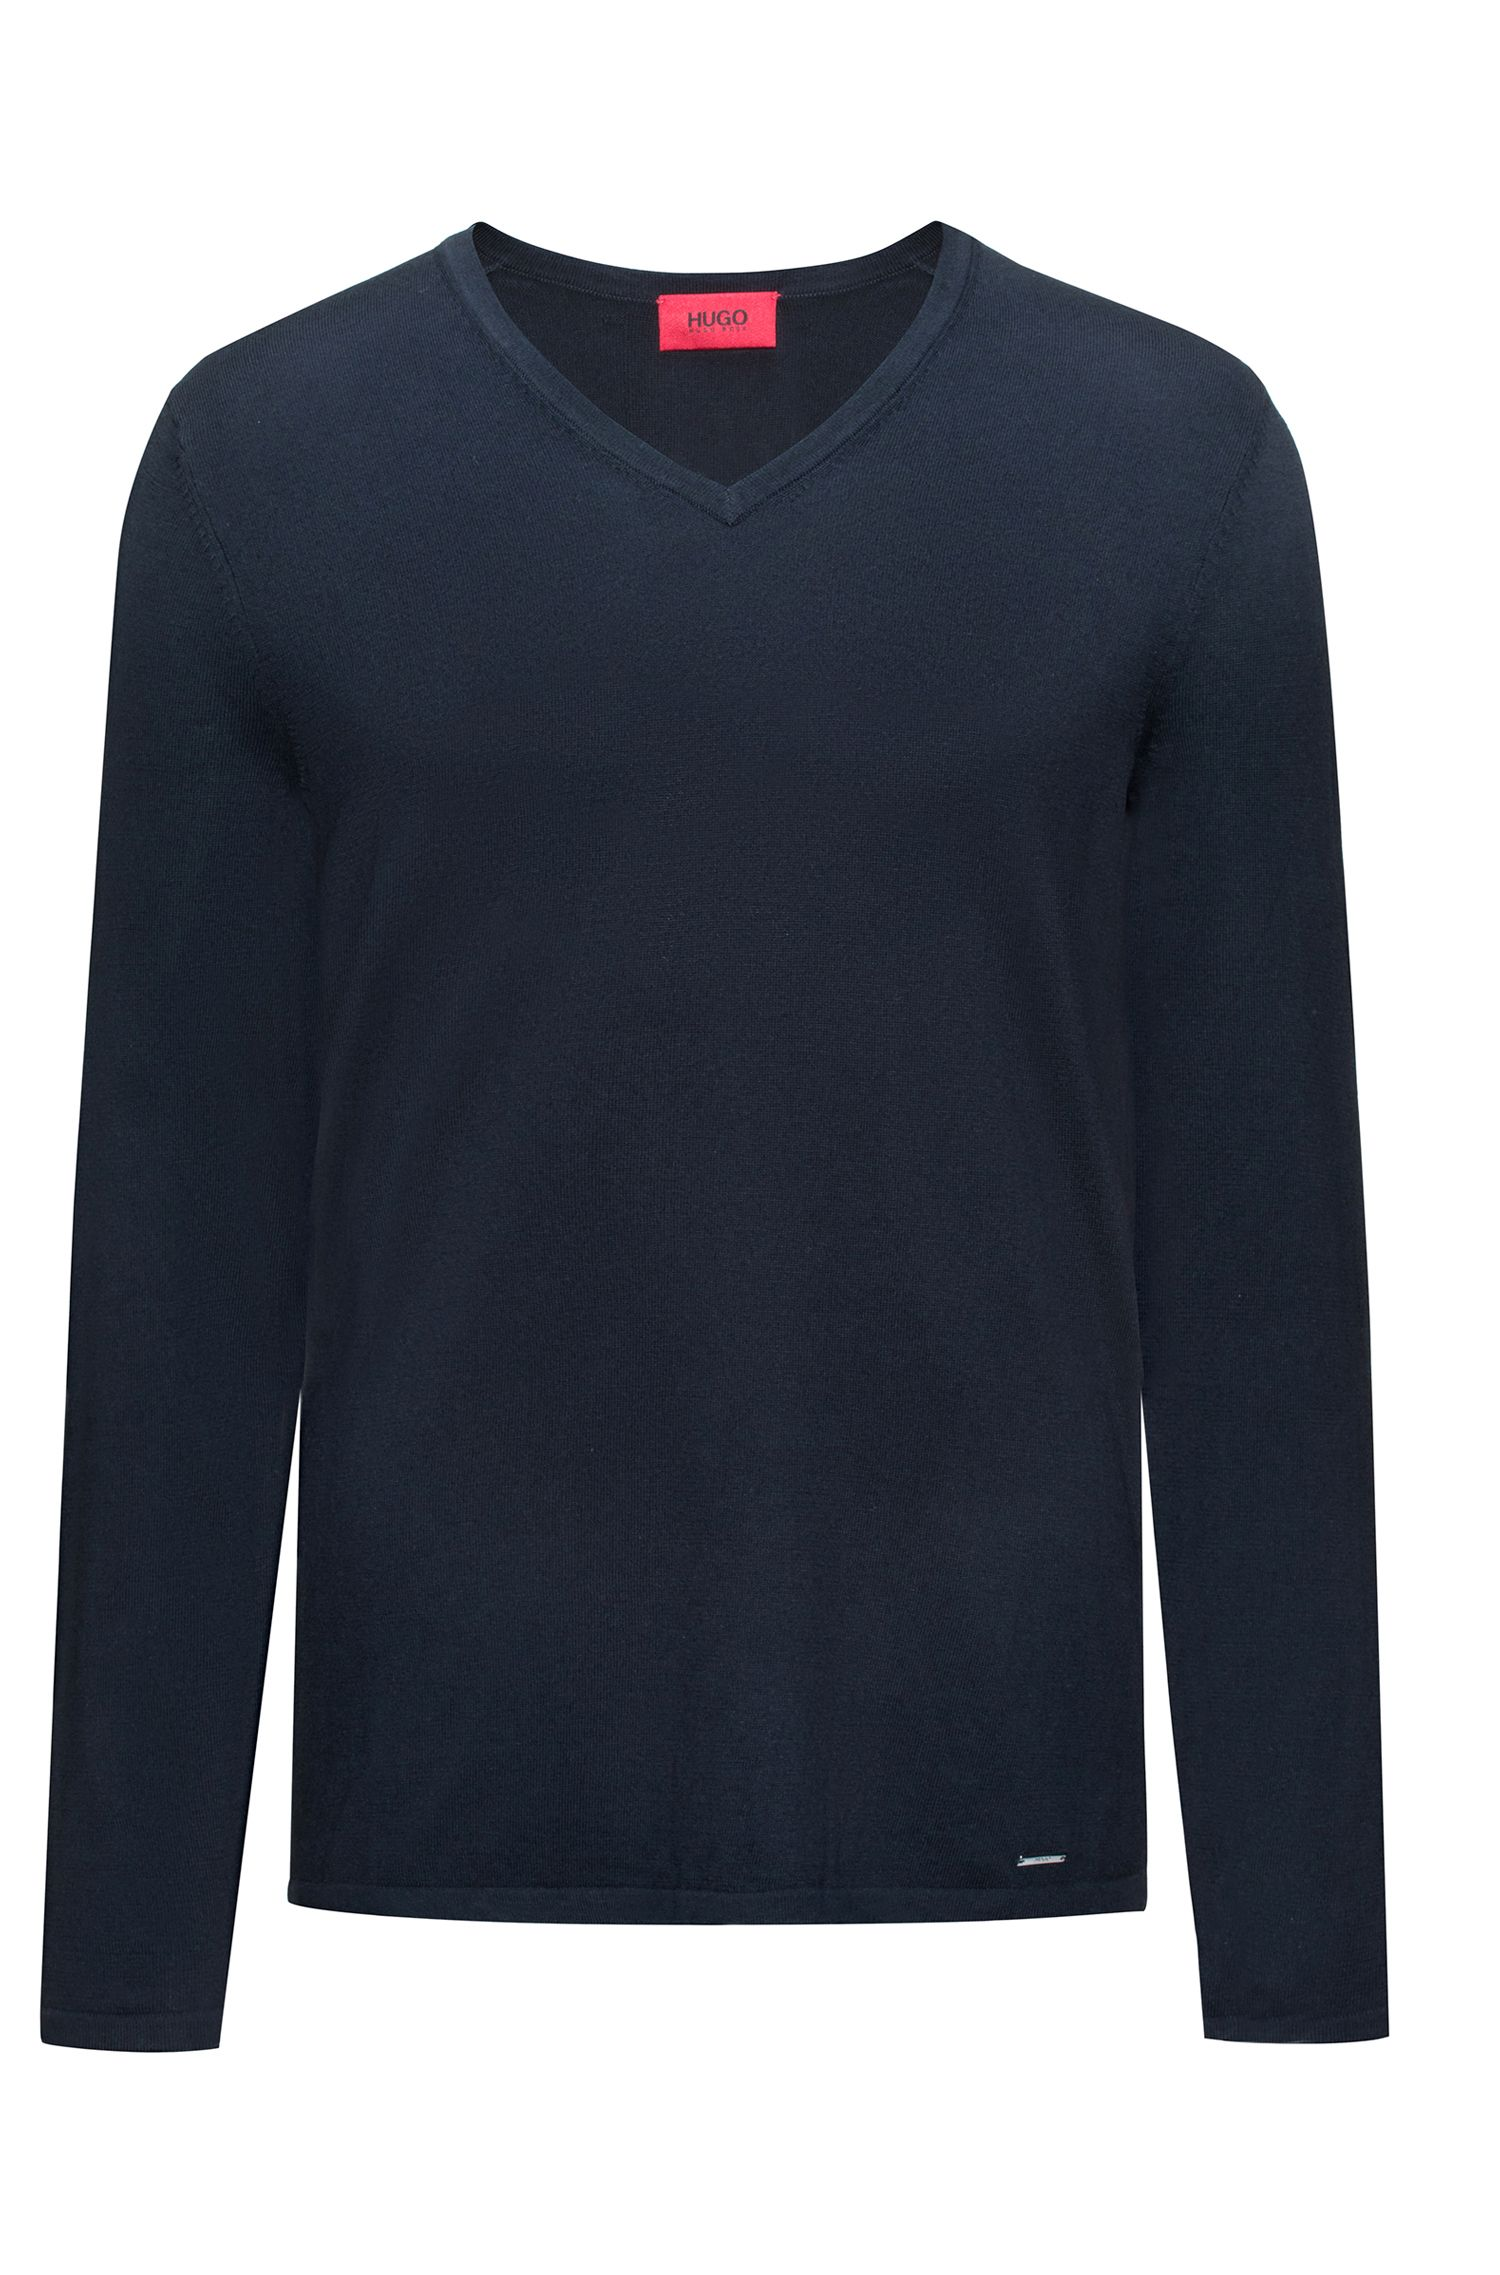 V-neck sweater in a cotton blend, Dark Blue